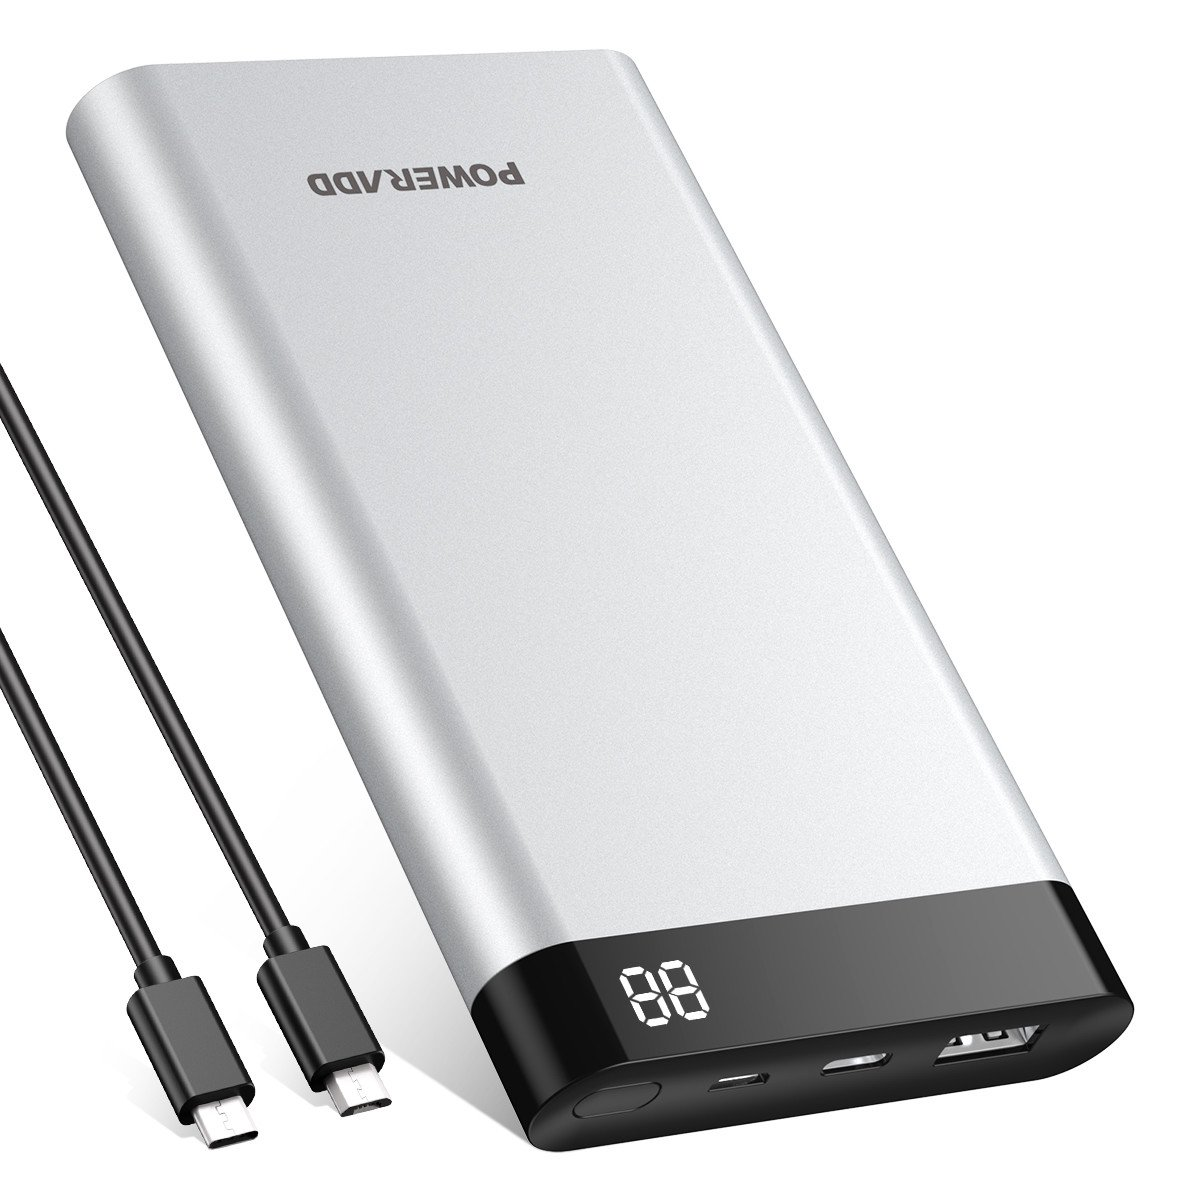 A SMART POWER BANK INDEED